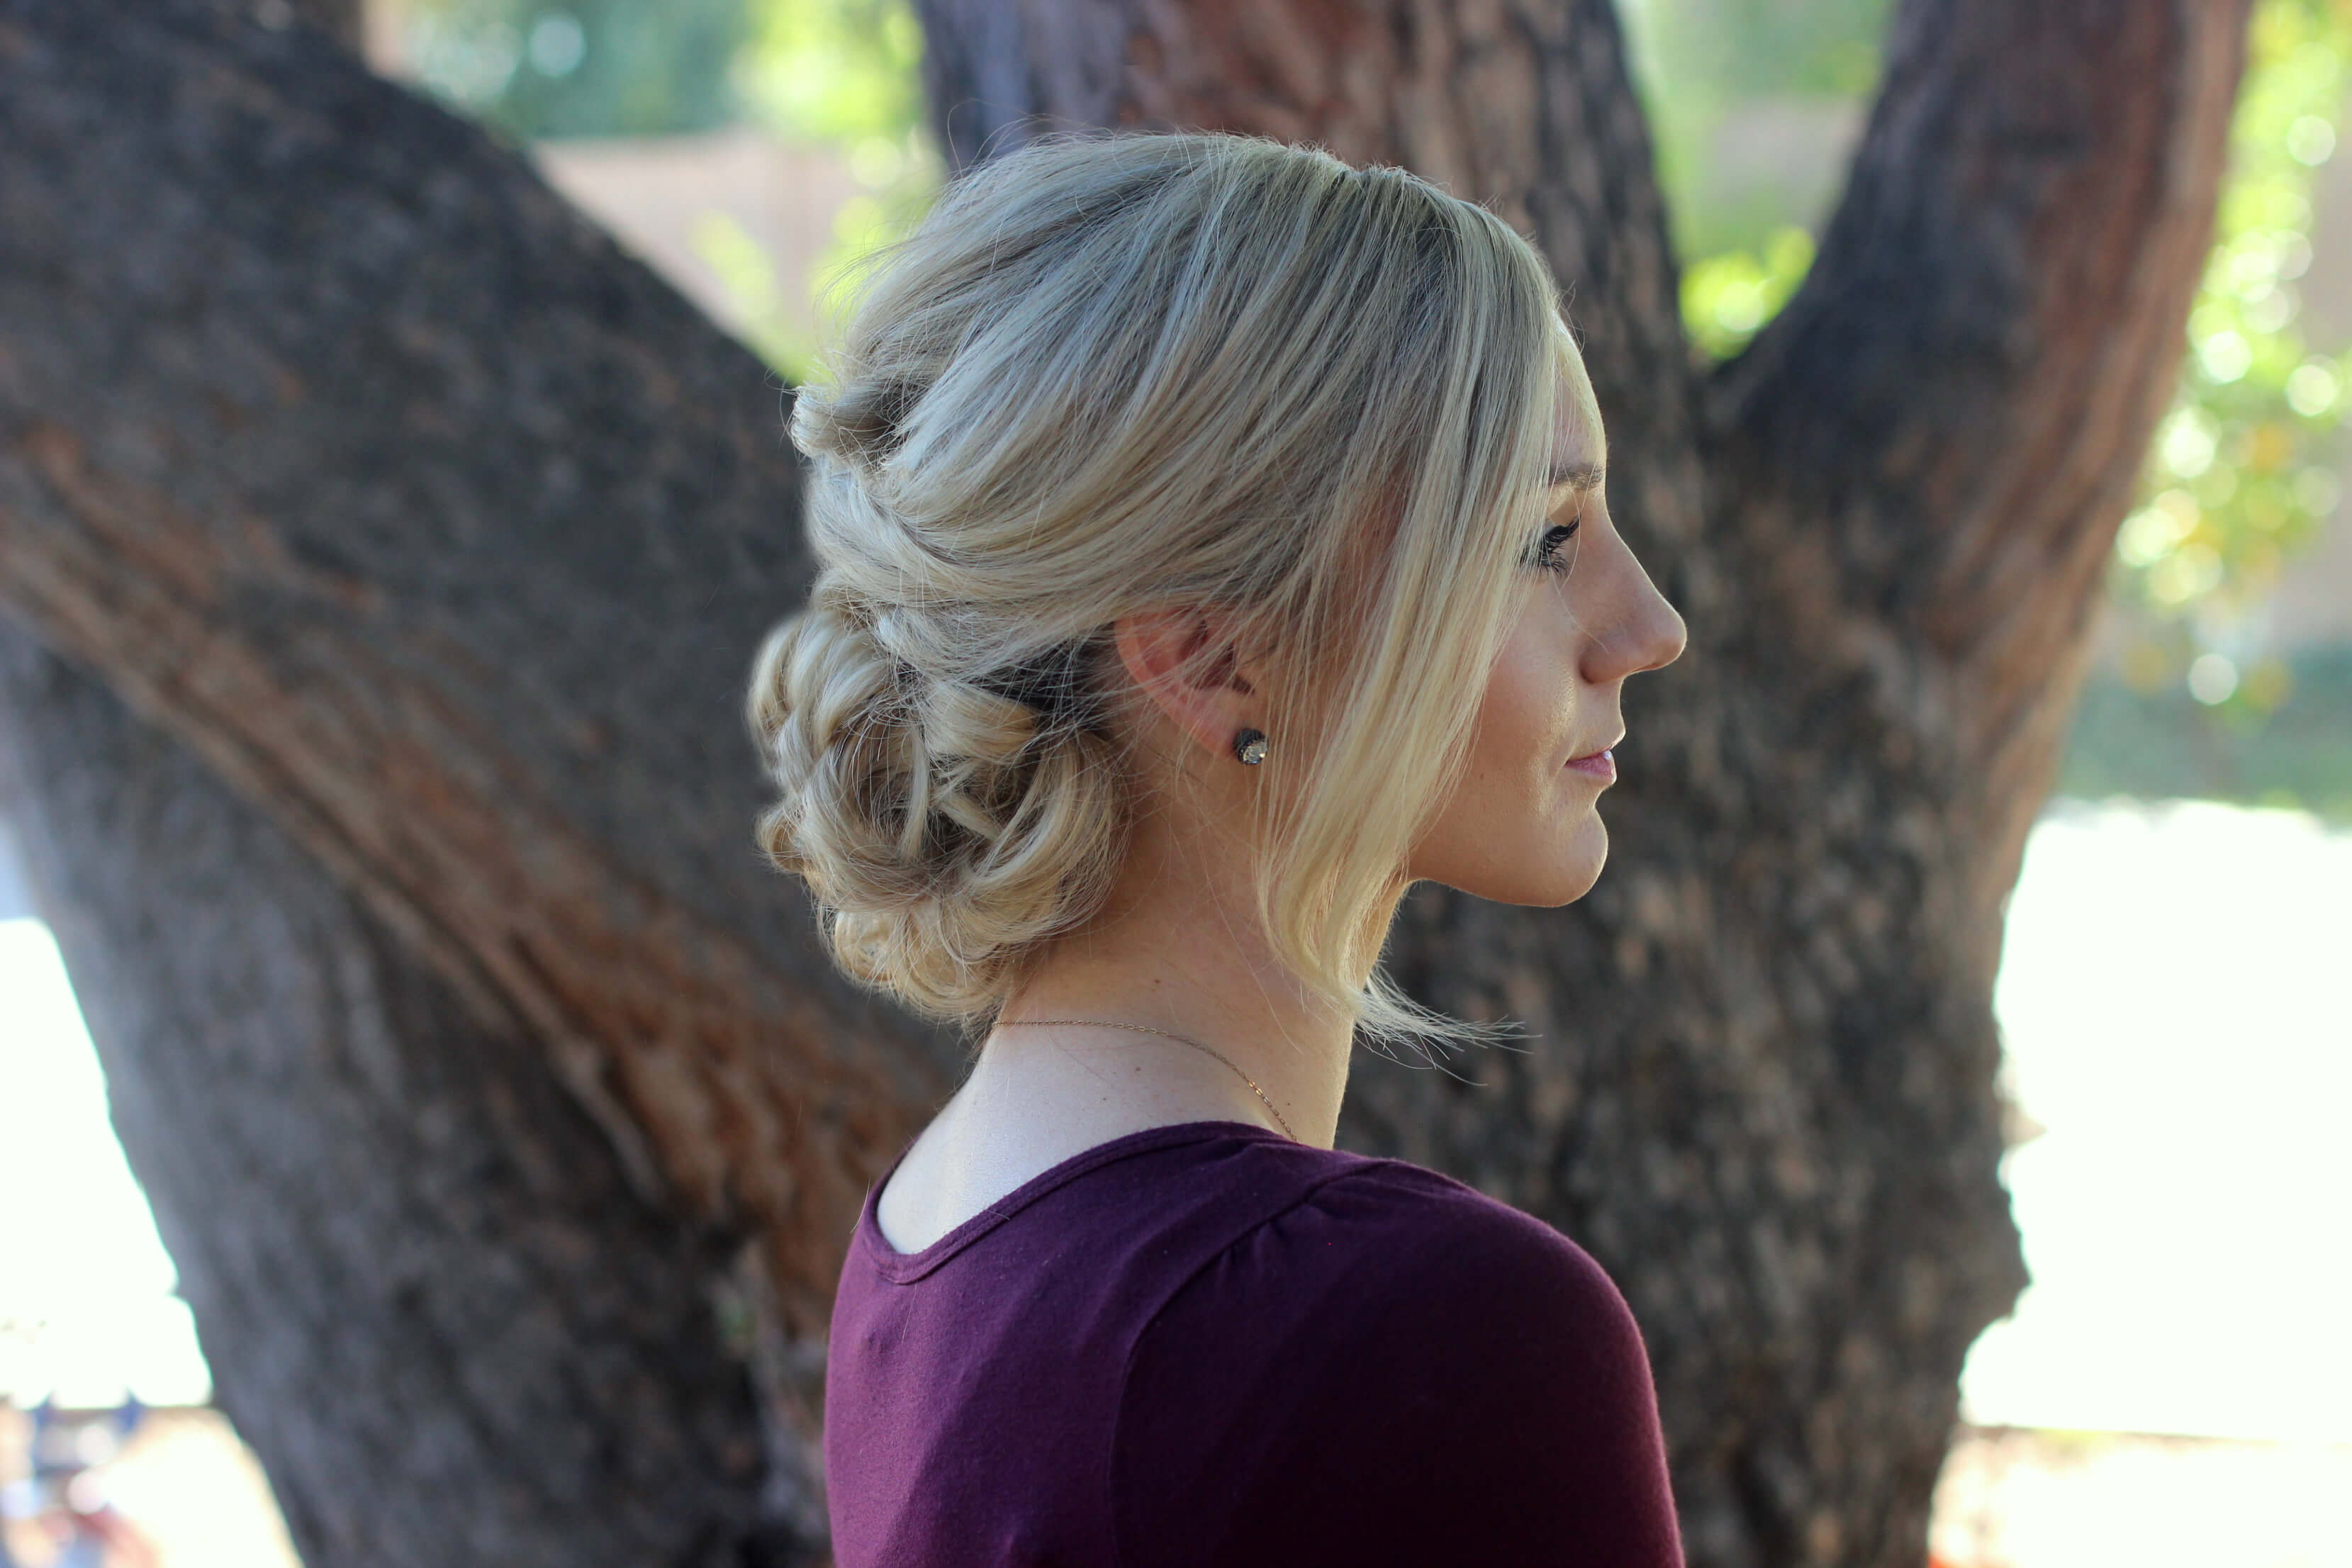 Topsy tail hairstyle for humidity